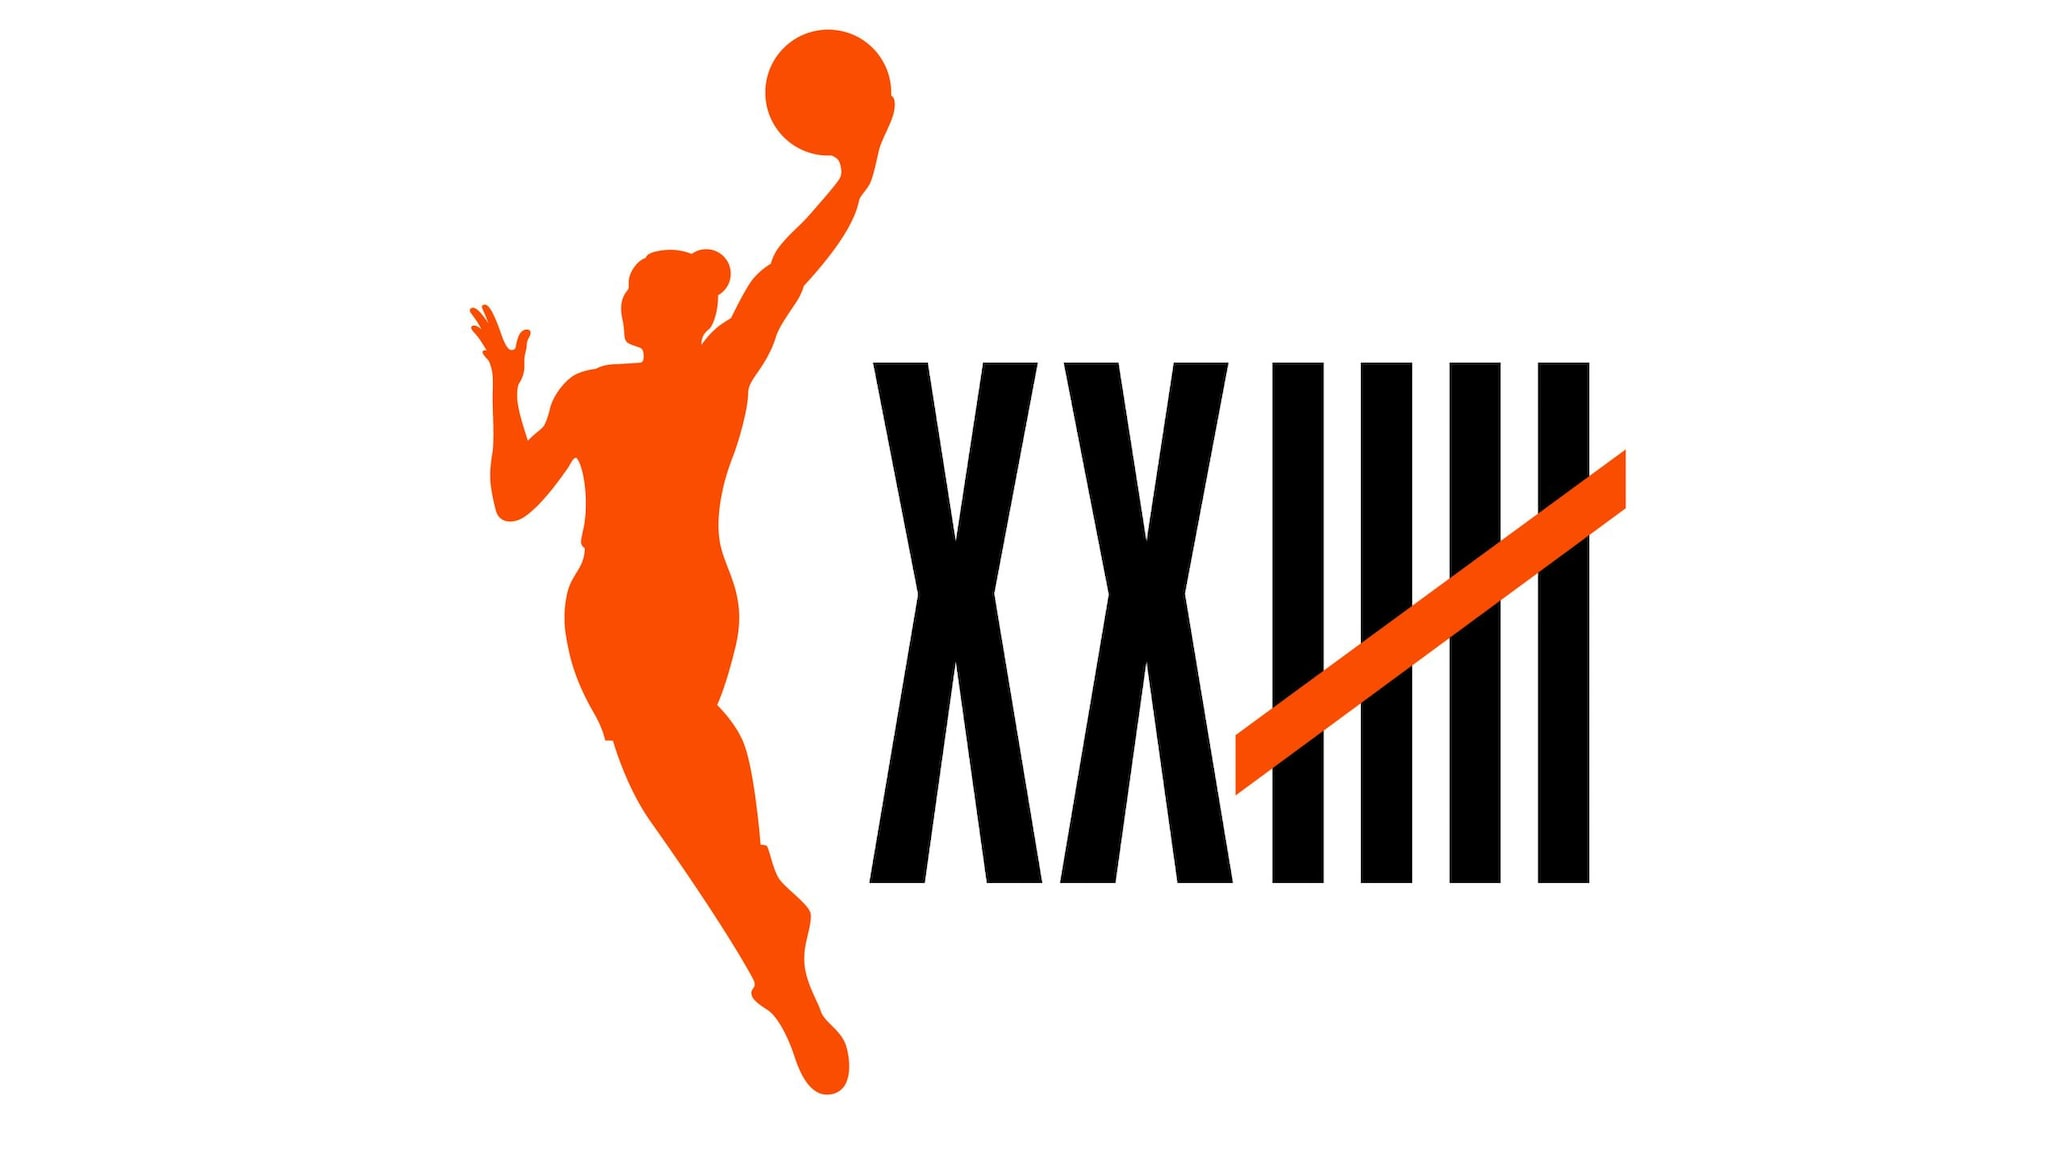 """WNBA's """"W25"""" Platform Will Honor 25 Greatest Players of All Time And Give Fans an Opportunity to """"Vote For The GOAT"""" - WNBA.com - Official Site of the WNBA"""